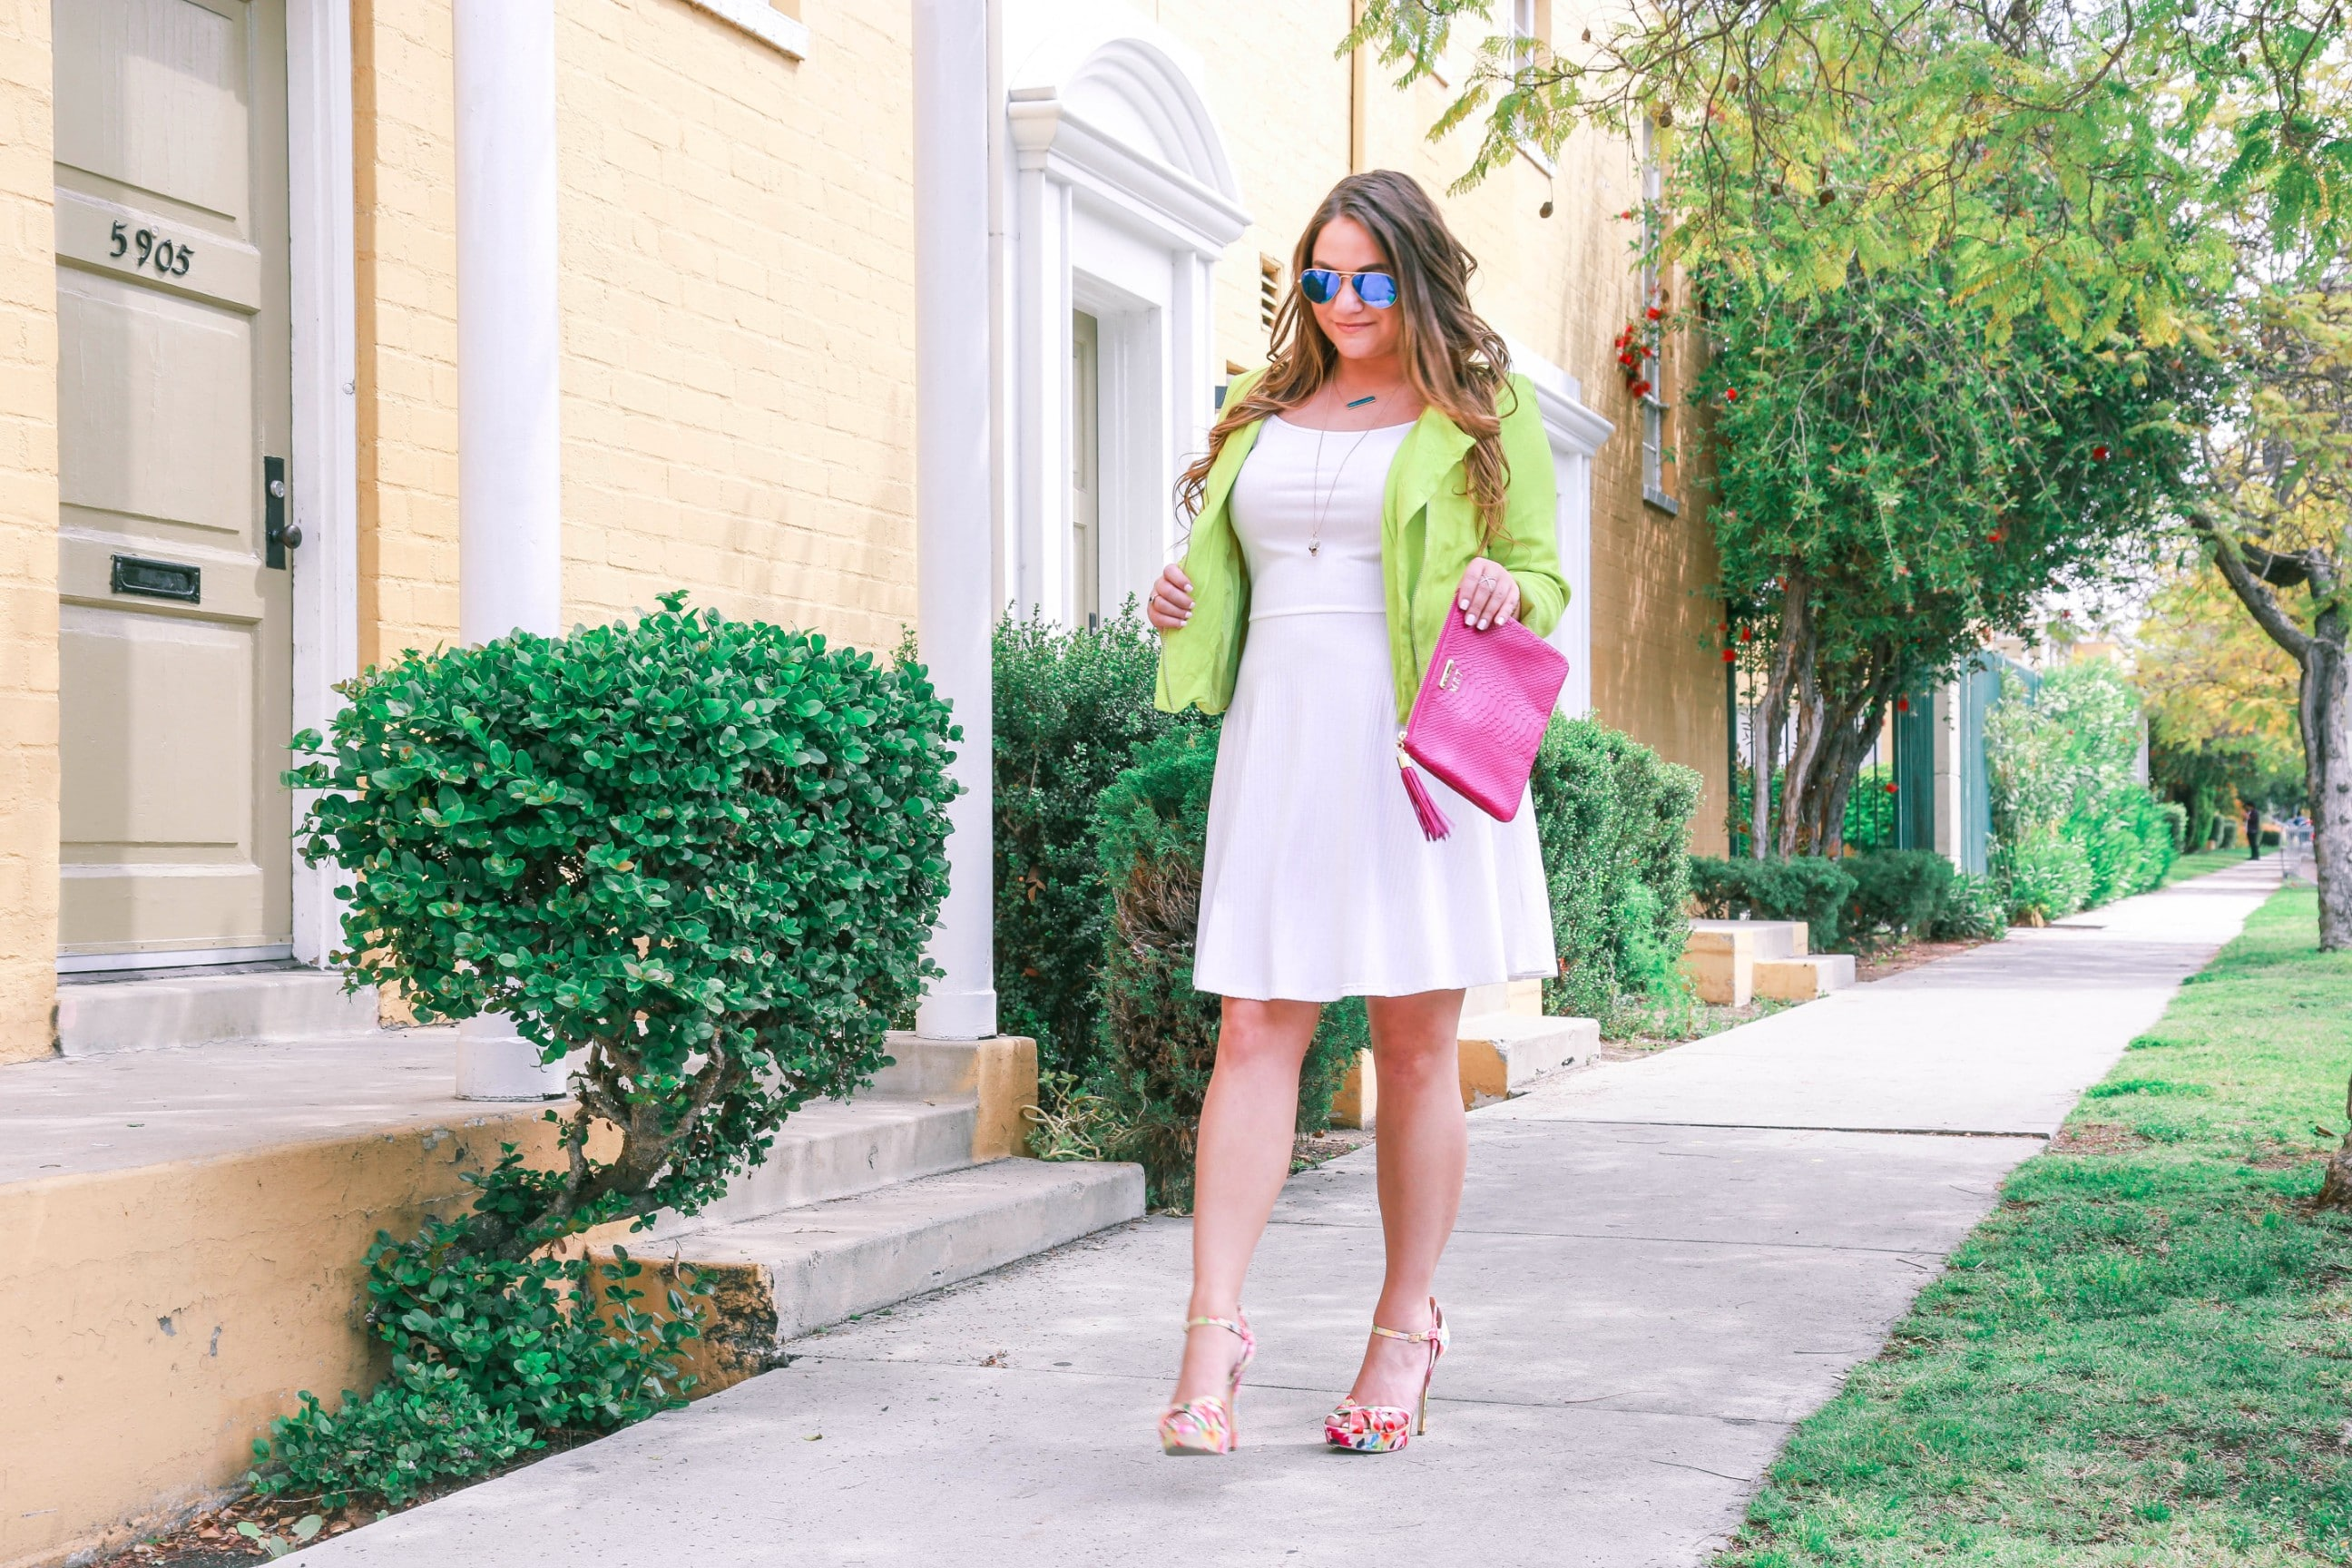 missyonmadison, melissa tierney, missy on madison instagram, fashion blog, fashion blogger, style blogger, spring style, nina shoes, floral heels, floral pumps, white a line dress, white dress, lime green jacket, lime green moto jacket, neon moto jacket, neon lime green moto jacket, floral heeled sandals, raybans, blue raybans, blue aviators, gigi ny clutch, gigi ny magenta uber clutch, la blogger,